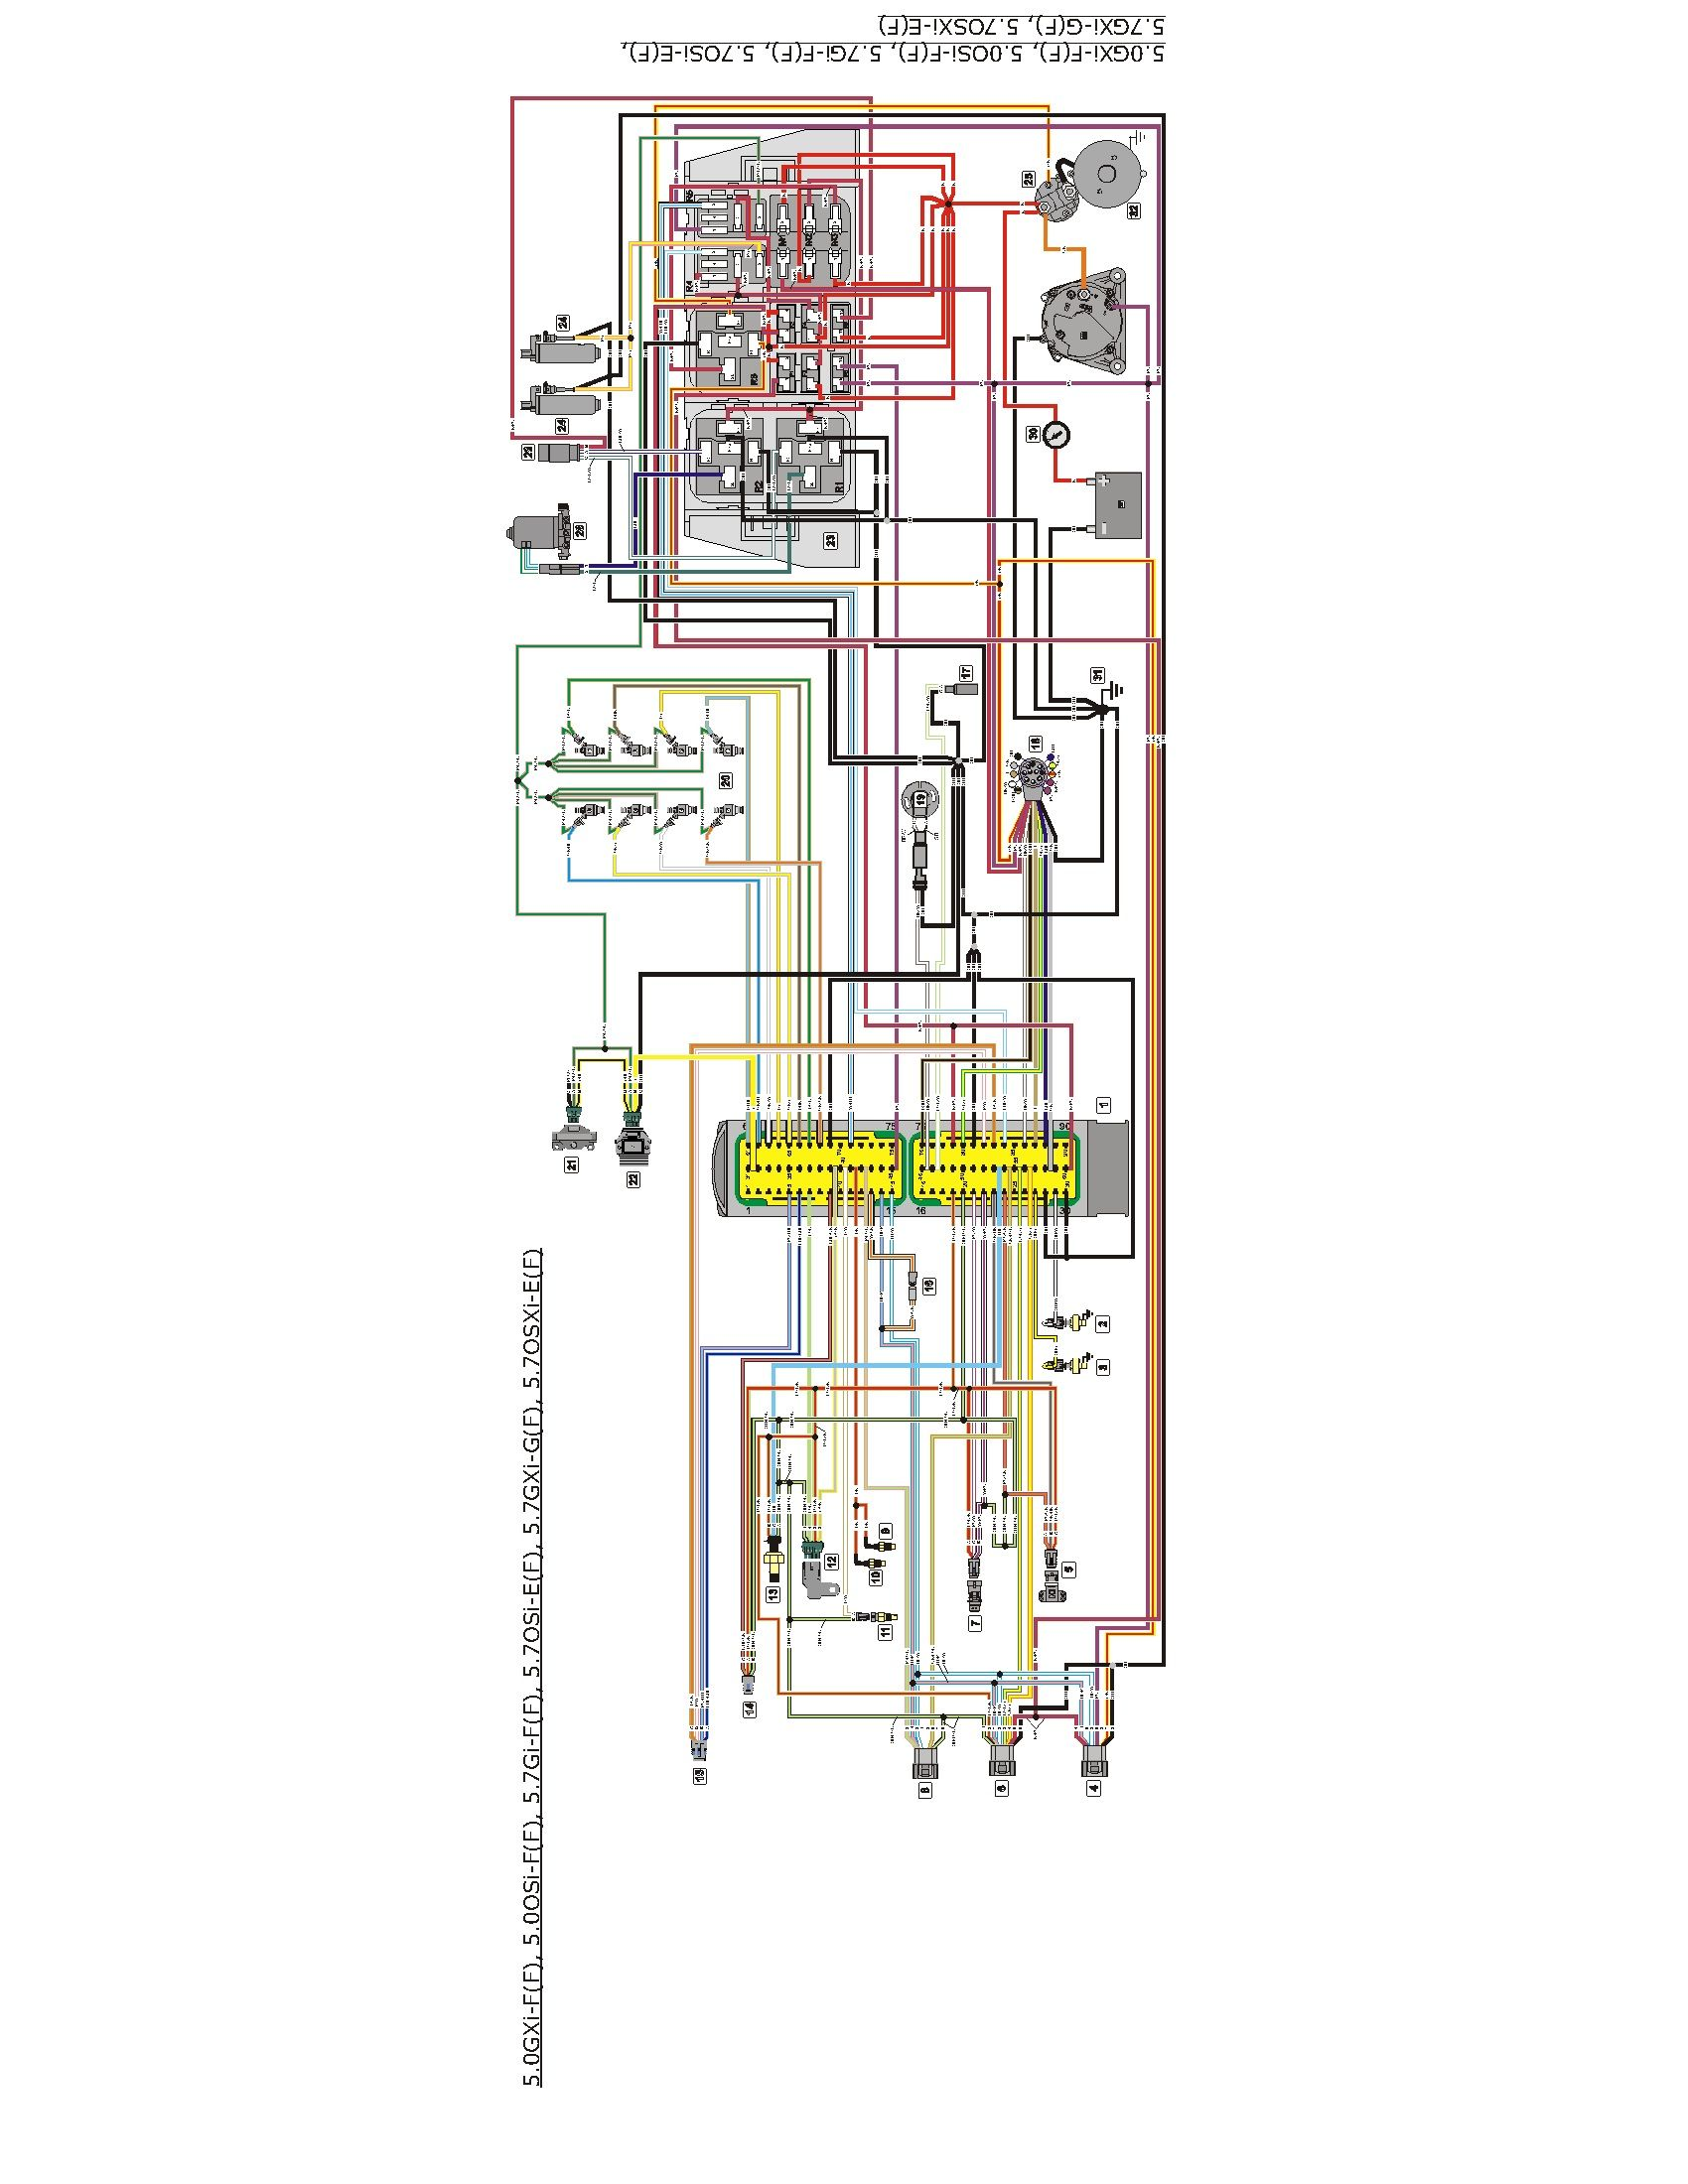 38e0106861e0fe47e508530985b32839 volvo penta 5 7 wiring diagram simple boat wiring diagram \u2022 free volvo penta 5.7 gxi wiring diagram at couponss.co